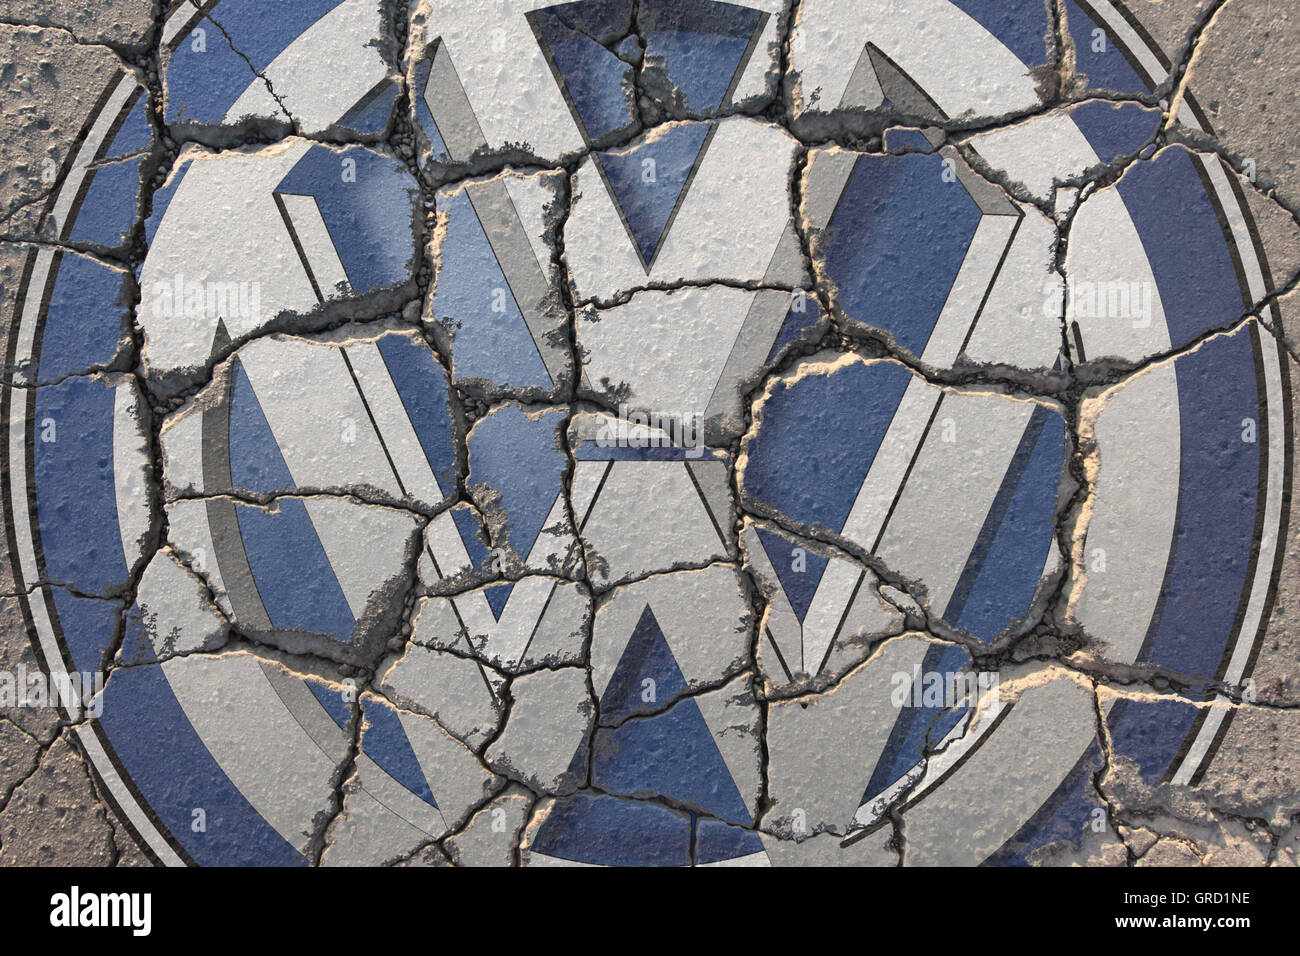 Crisis At Volkswagen Vw Sign On Eroding Road - Stock Image